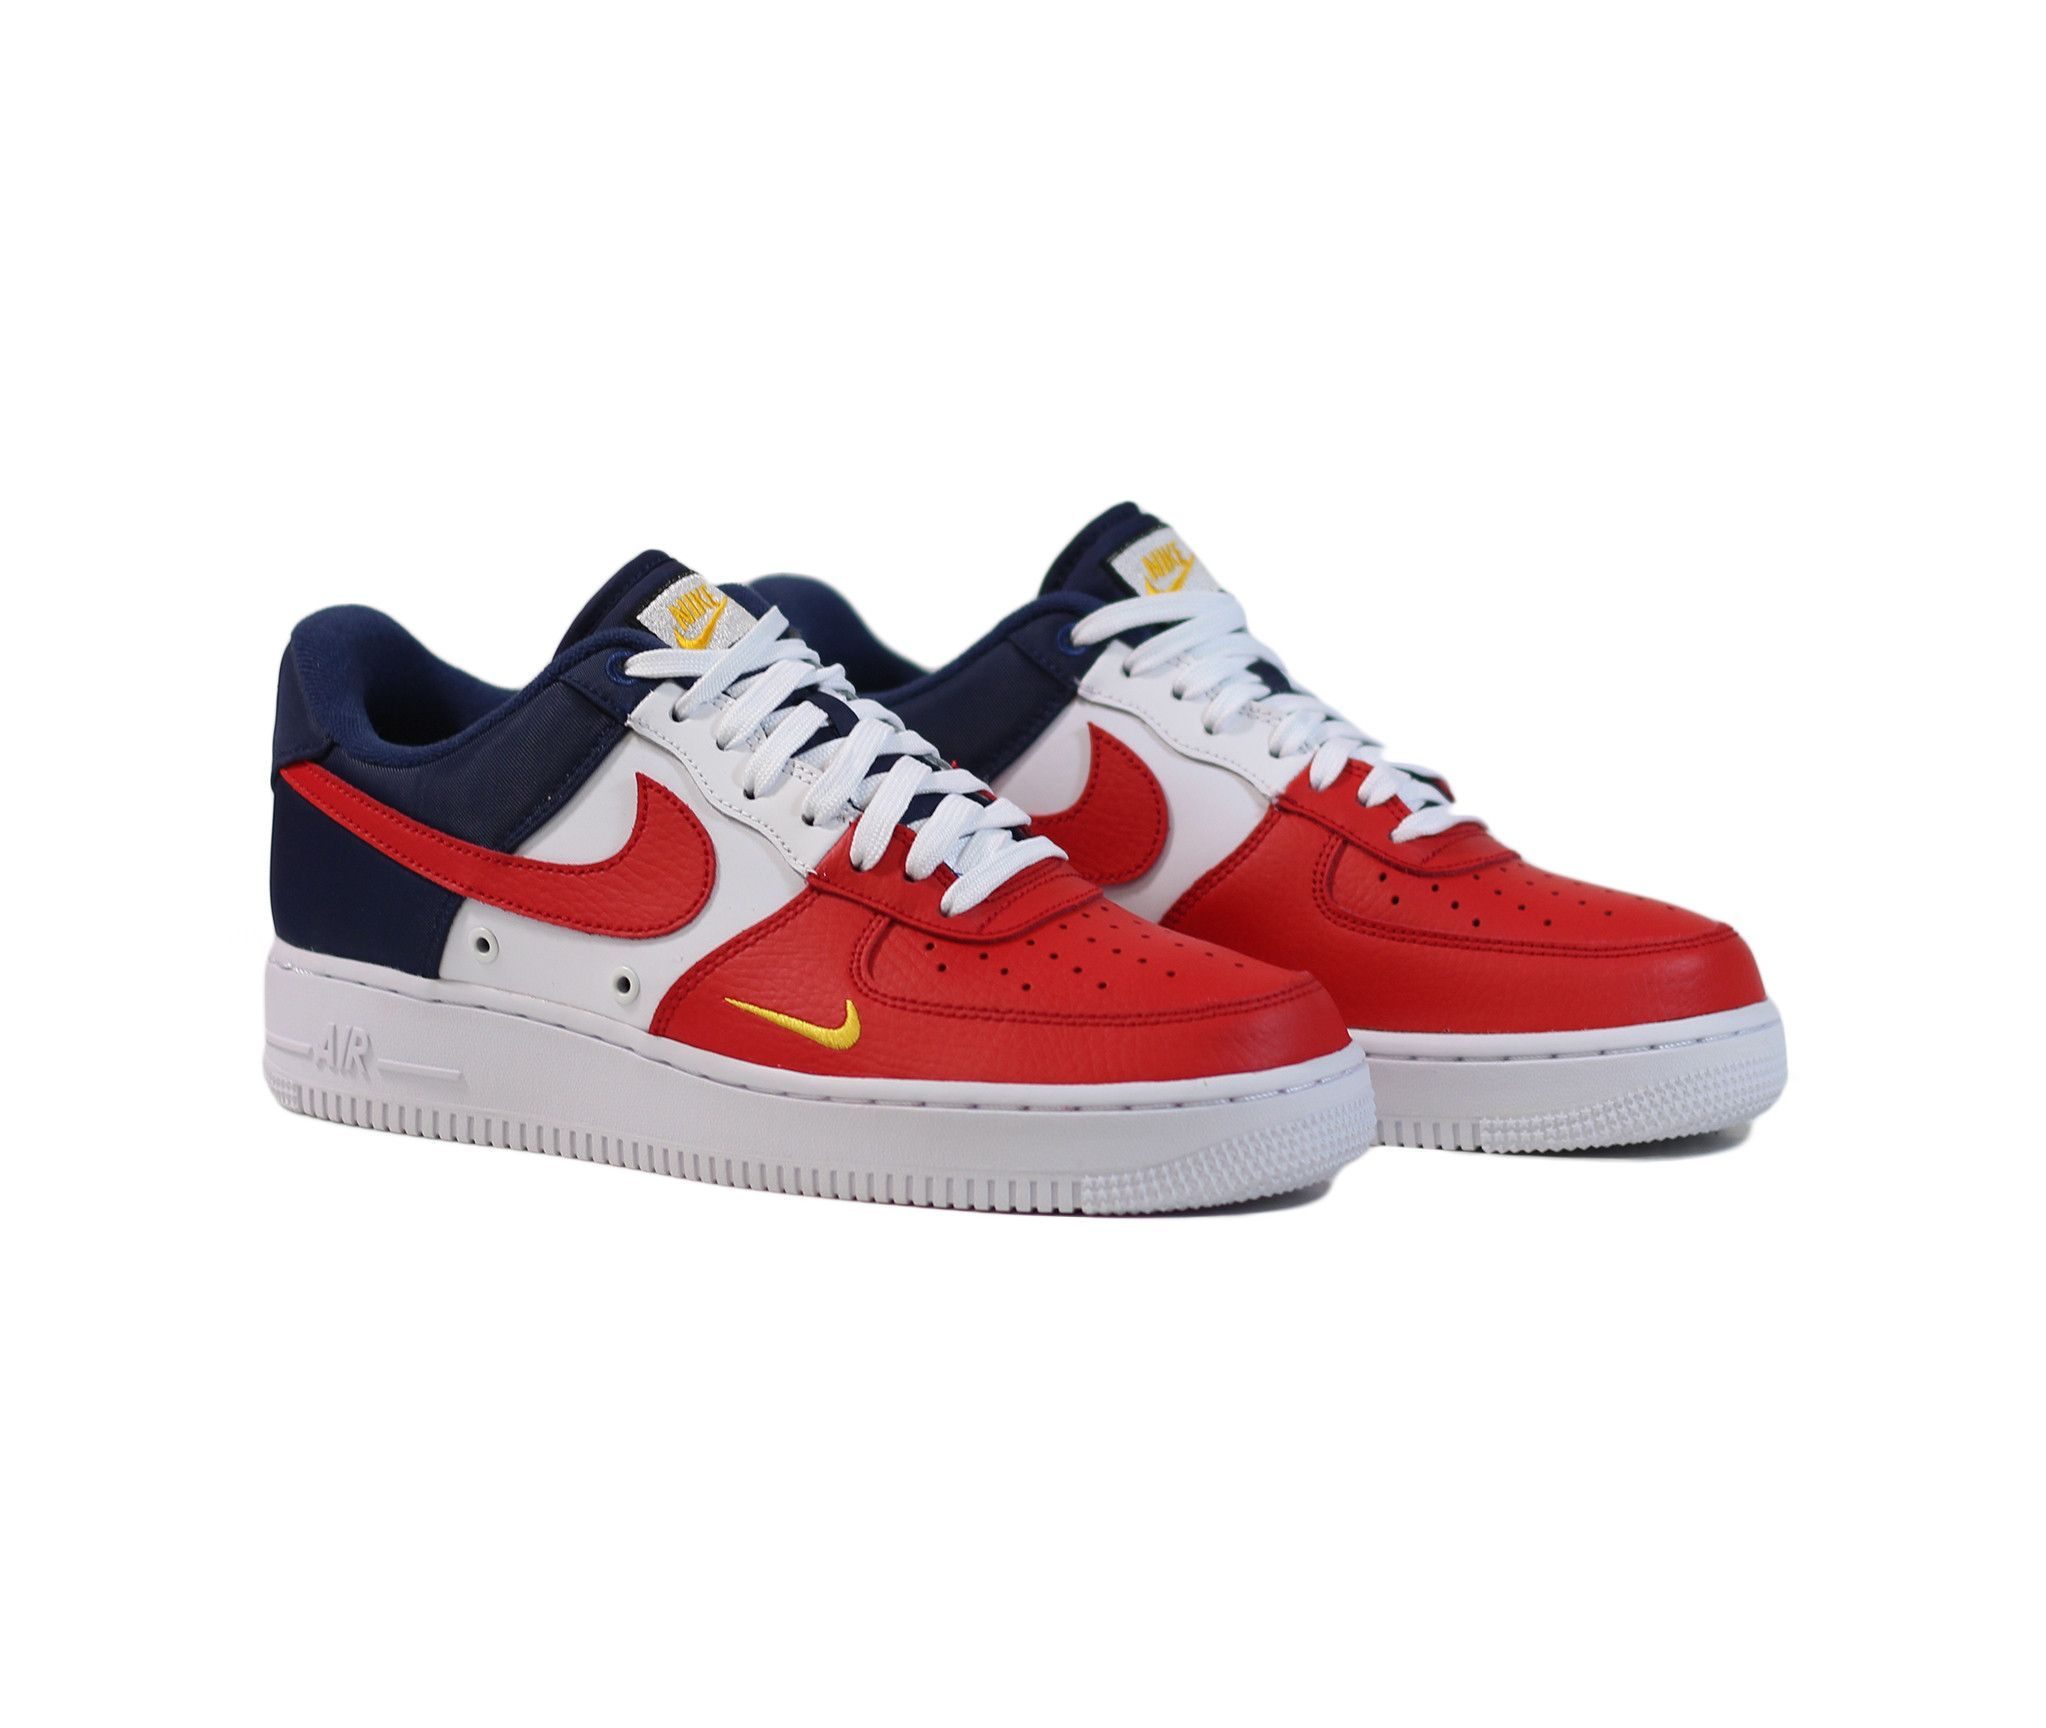 the latest 5ce15 48b6b NIKE Air Force 1 Low 07 LV8 - Obsidian/White-University Red | Products